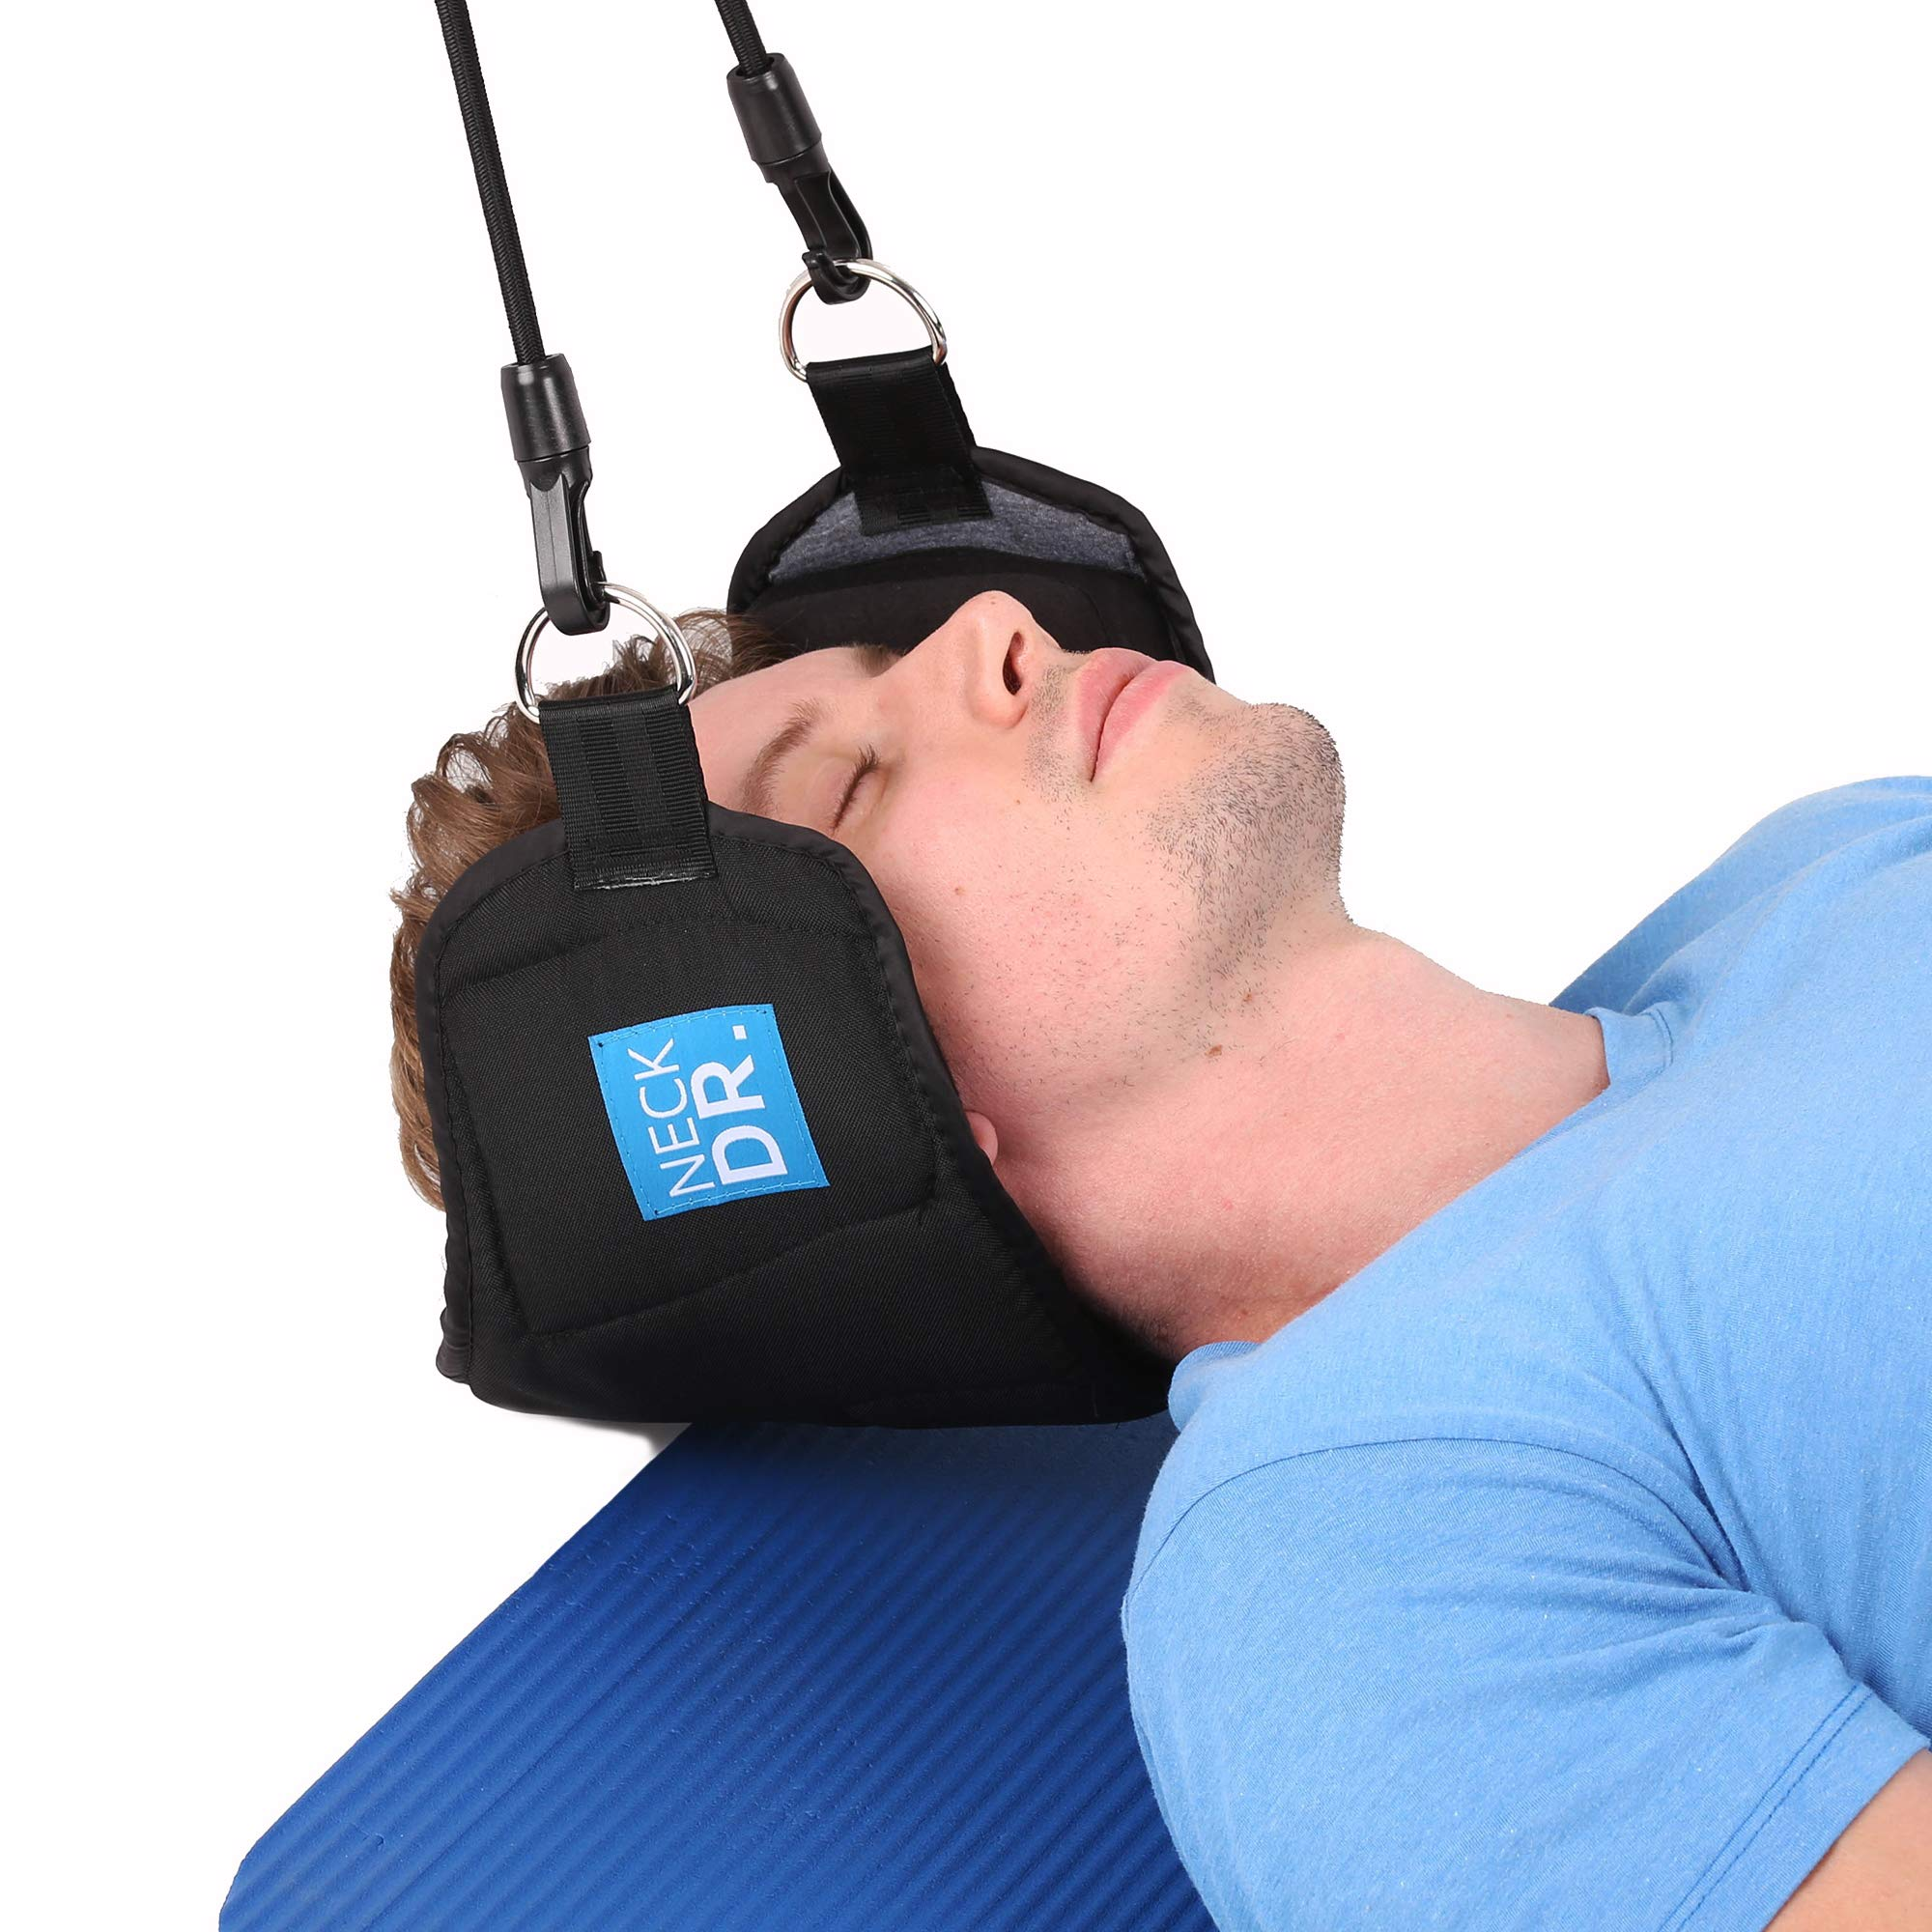 NECK DR. Premium Neck Hammock/Portable Traction Device – Neck Comfort, Cervical Compression Relief, Relaxation Device – Bonus Items: Neck Dr. Brand Eye Mask and Spiky Massage Ball by Neck Dr. (Image #2)